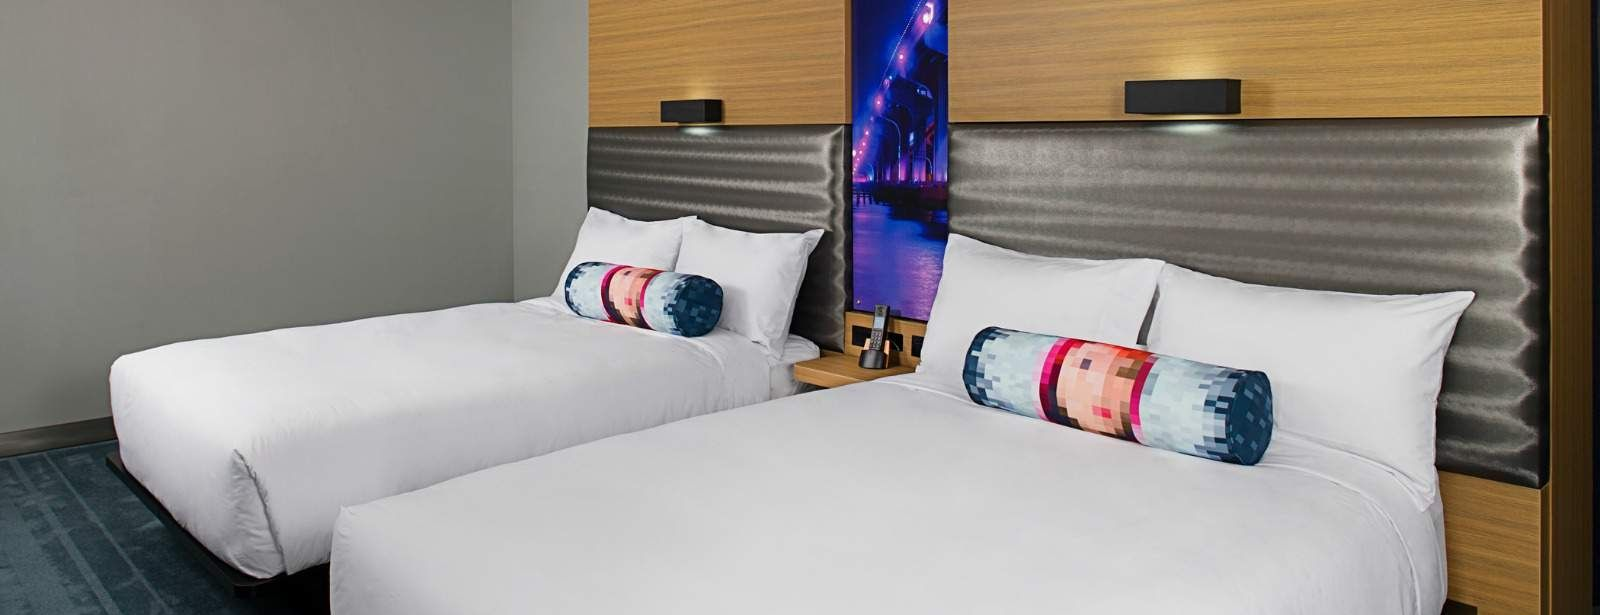 Brickell Accommodations - Aloft Room